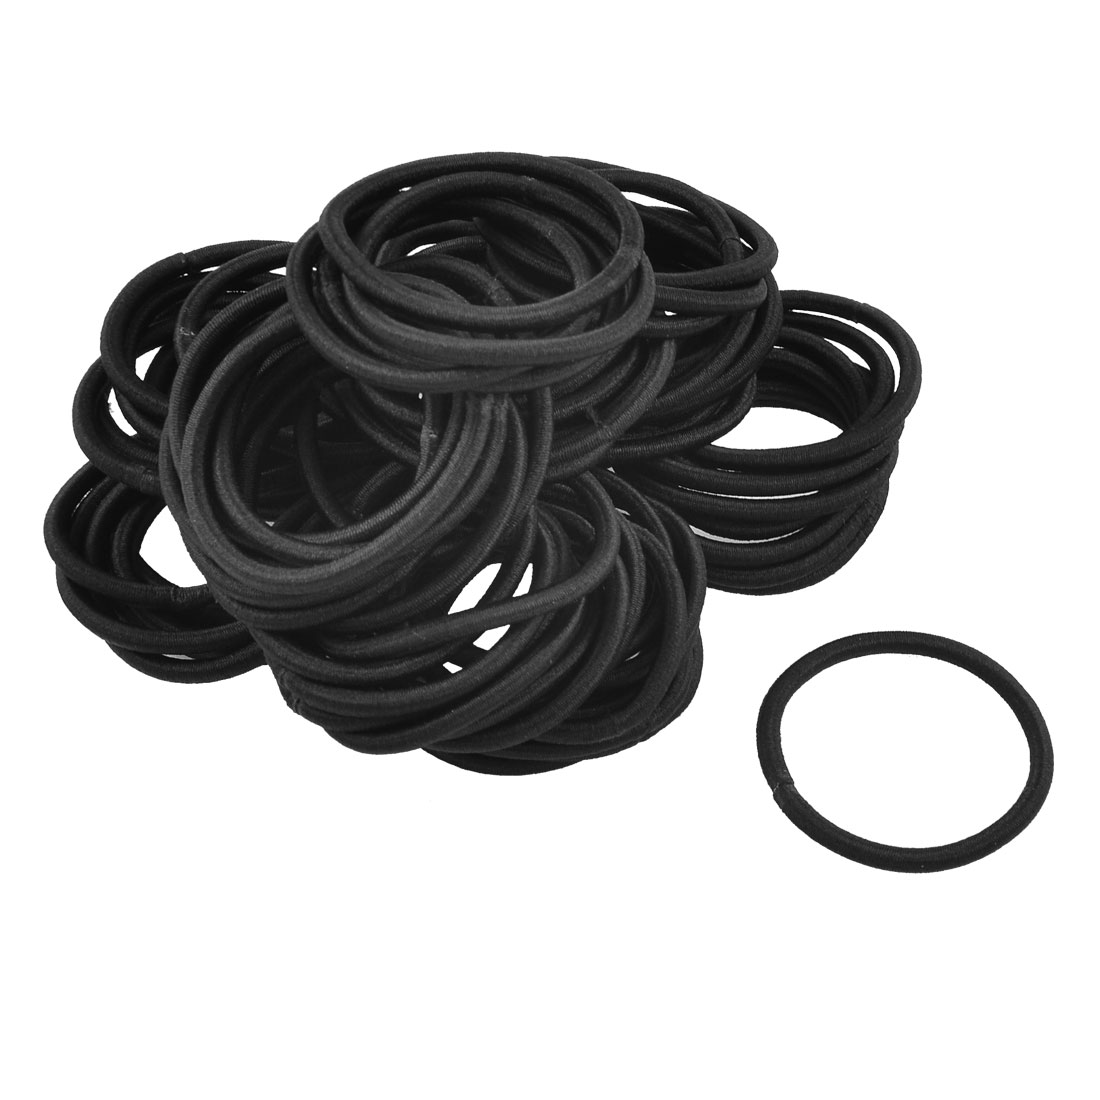 80 Pcs Nylon Bobbles Stretchy Hair Ties Hair Bands Ponytail Holders Black